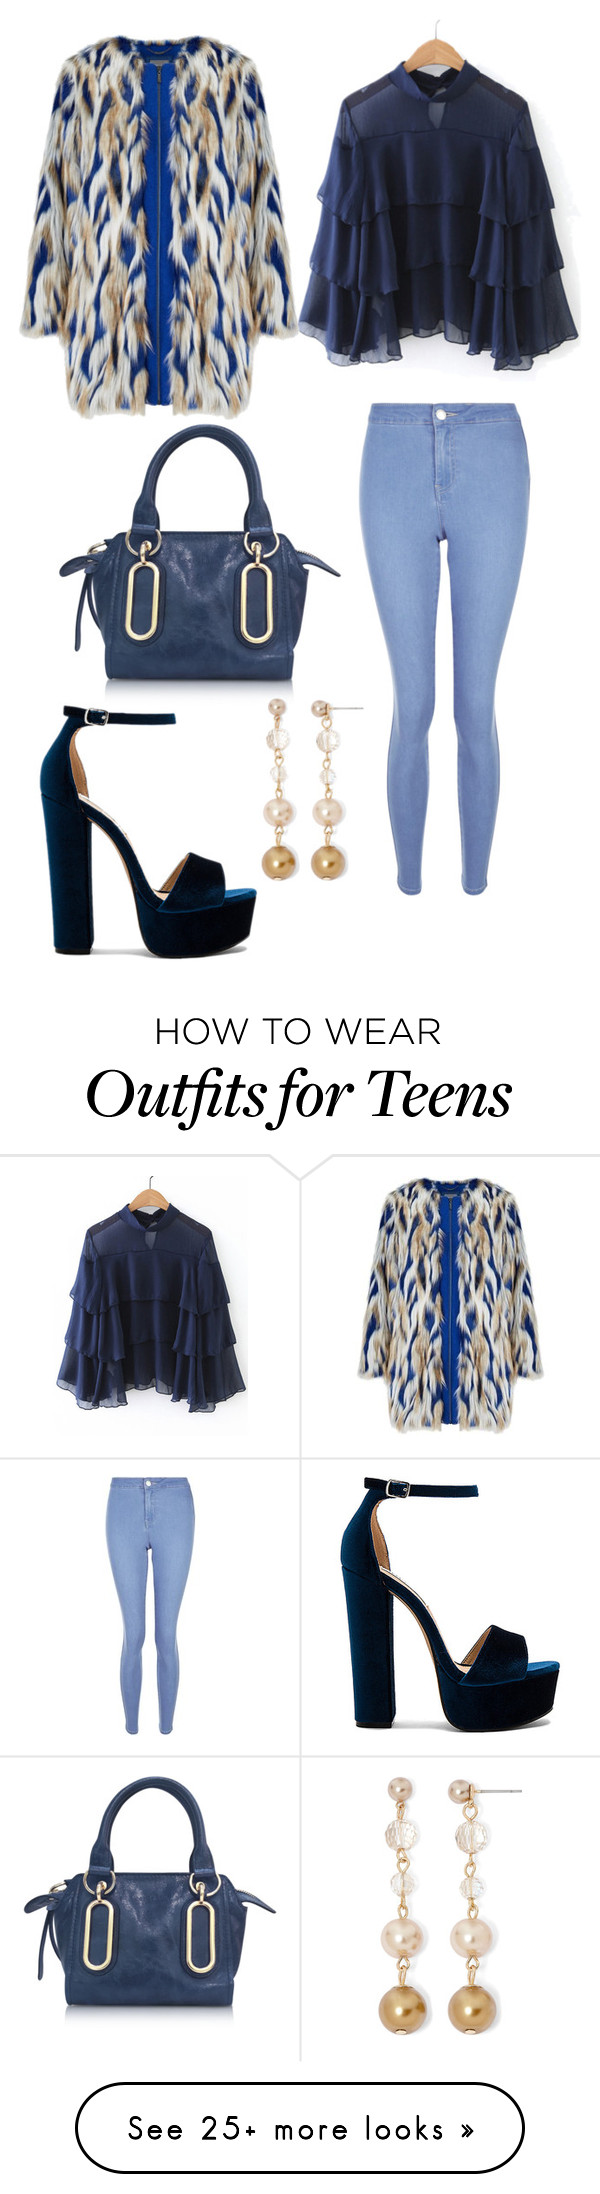 """Untitled #443"" by rubysparks90 on Polyvore featuring See by Chloé, New Look, Steve Madden and Vieste Rosa"